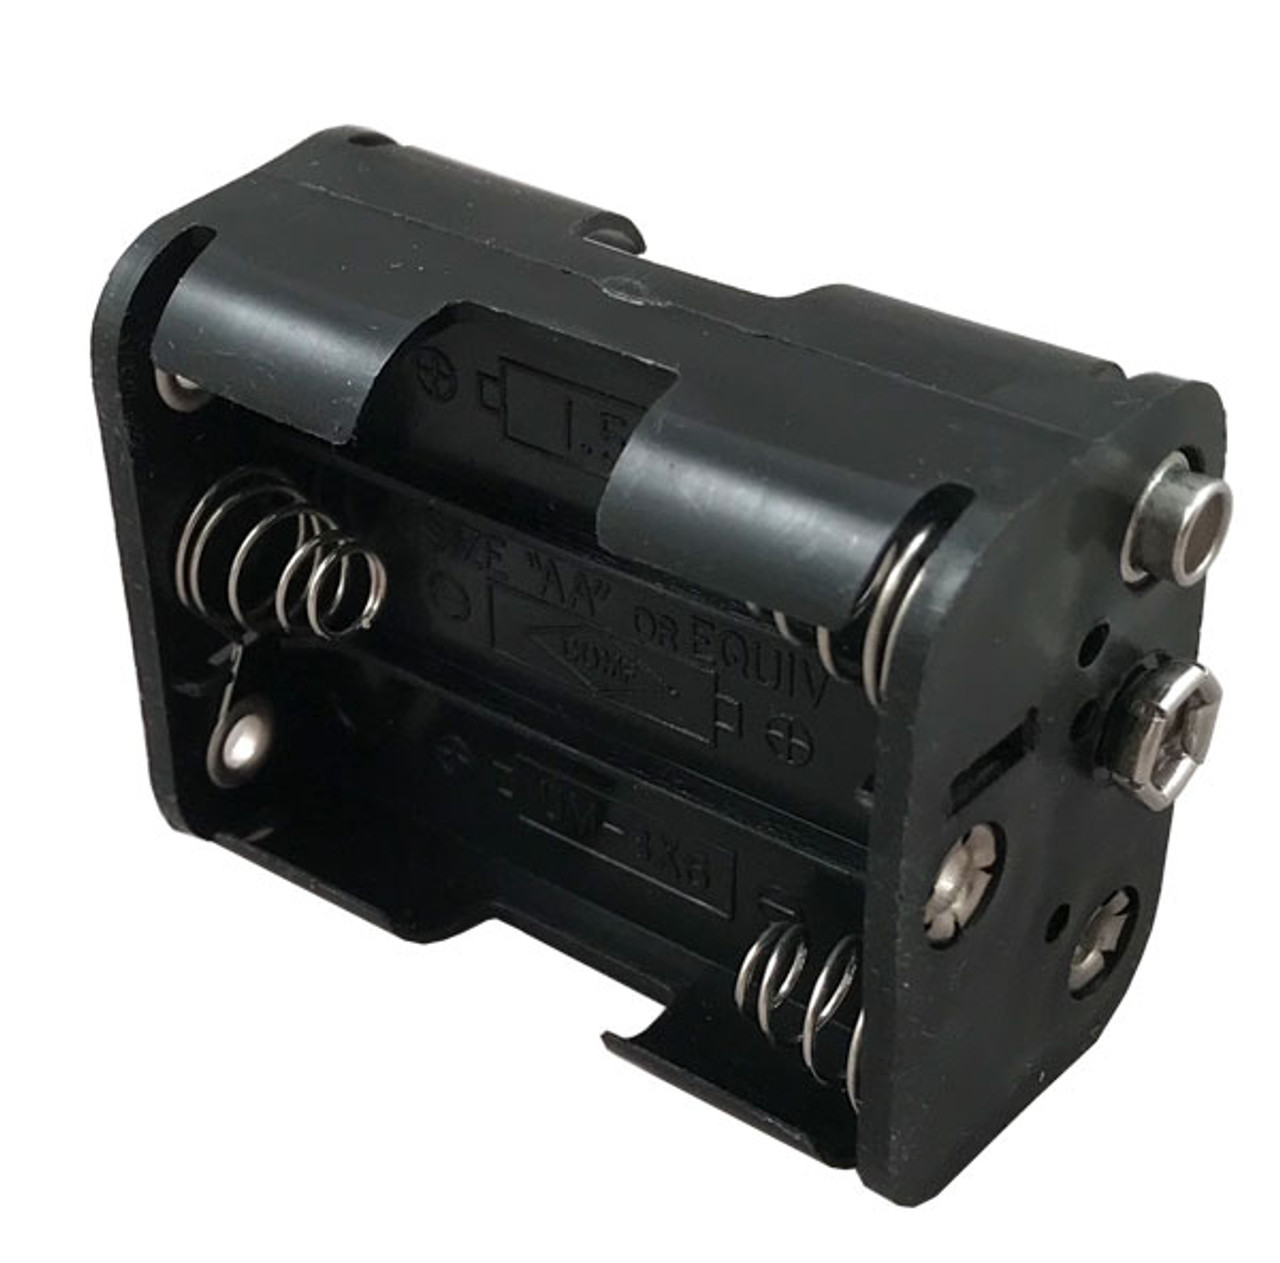 battery box with 9-volt clip connectors